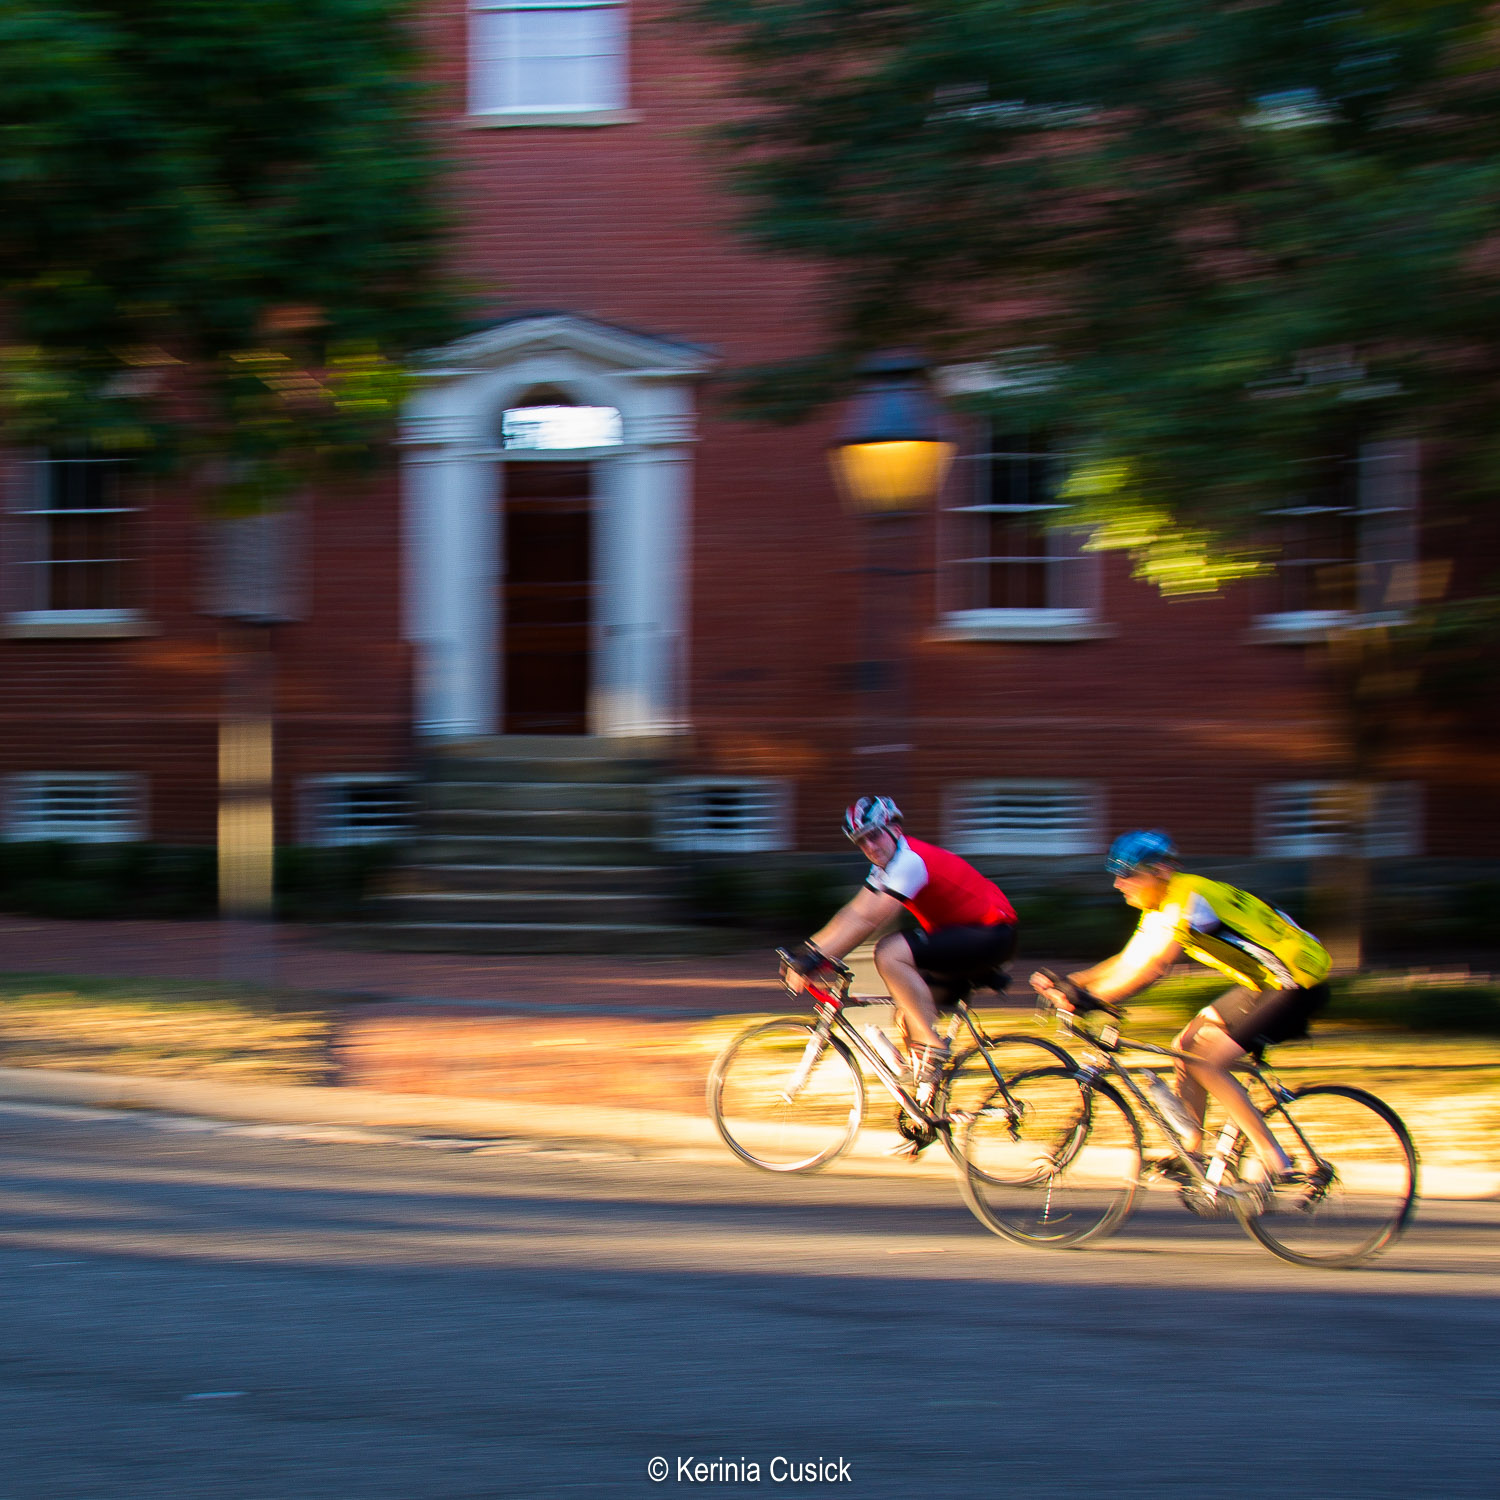 Learn how to add creative blur to your photos such as this one taken in front of the Robert E Lee childhood home.